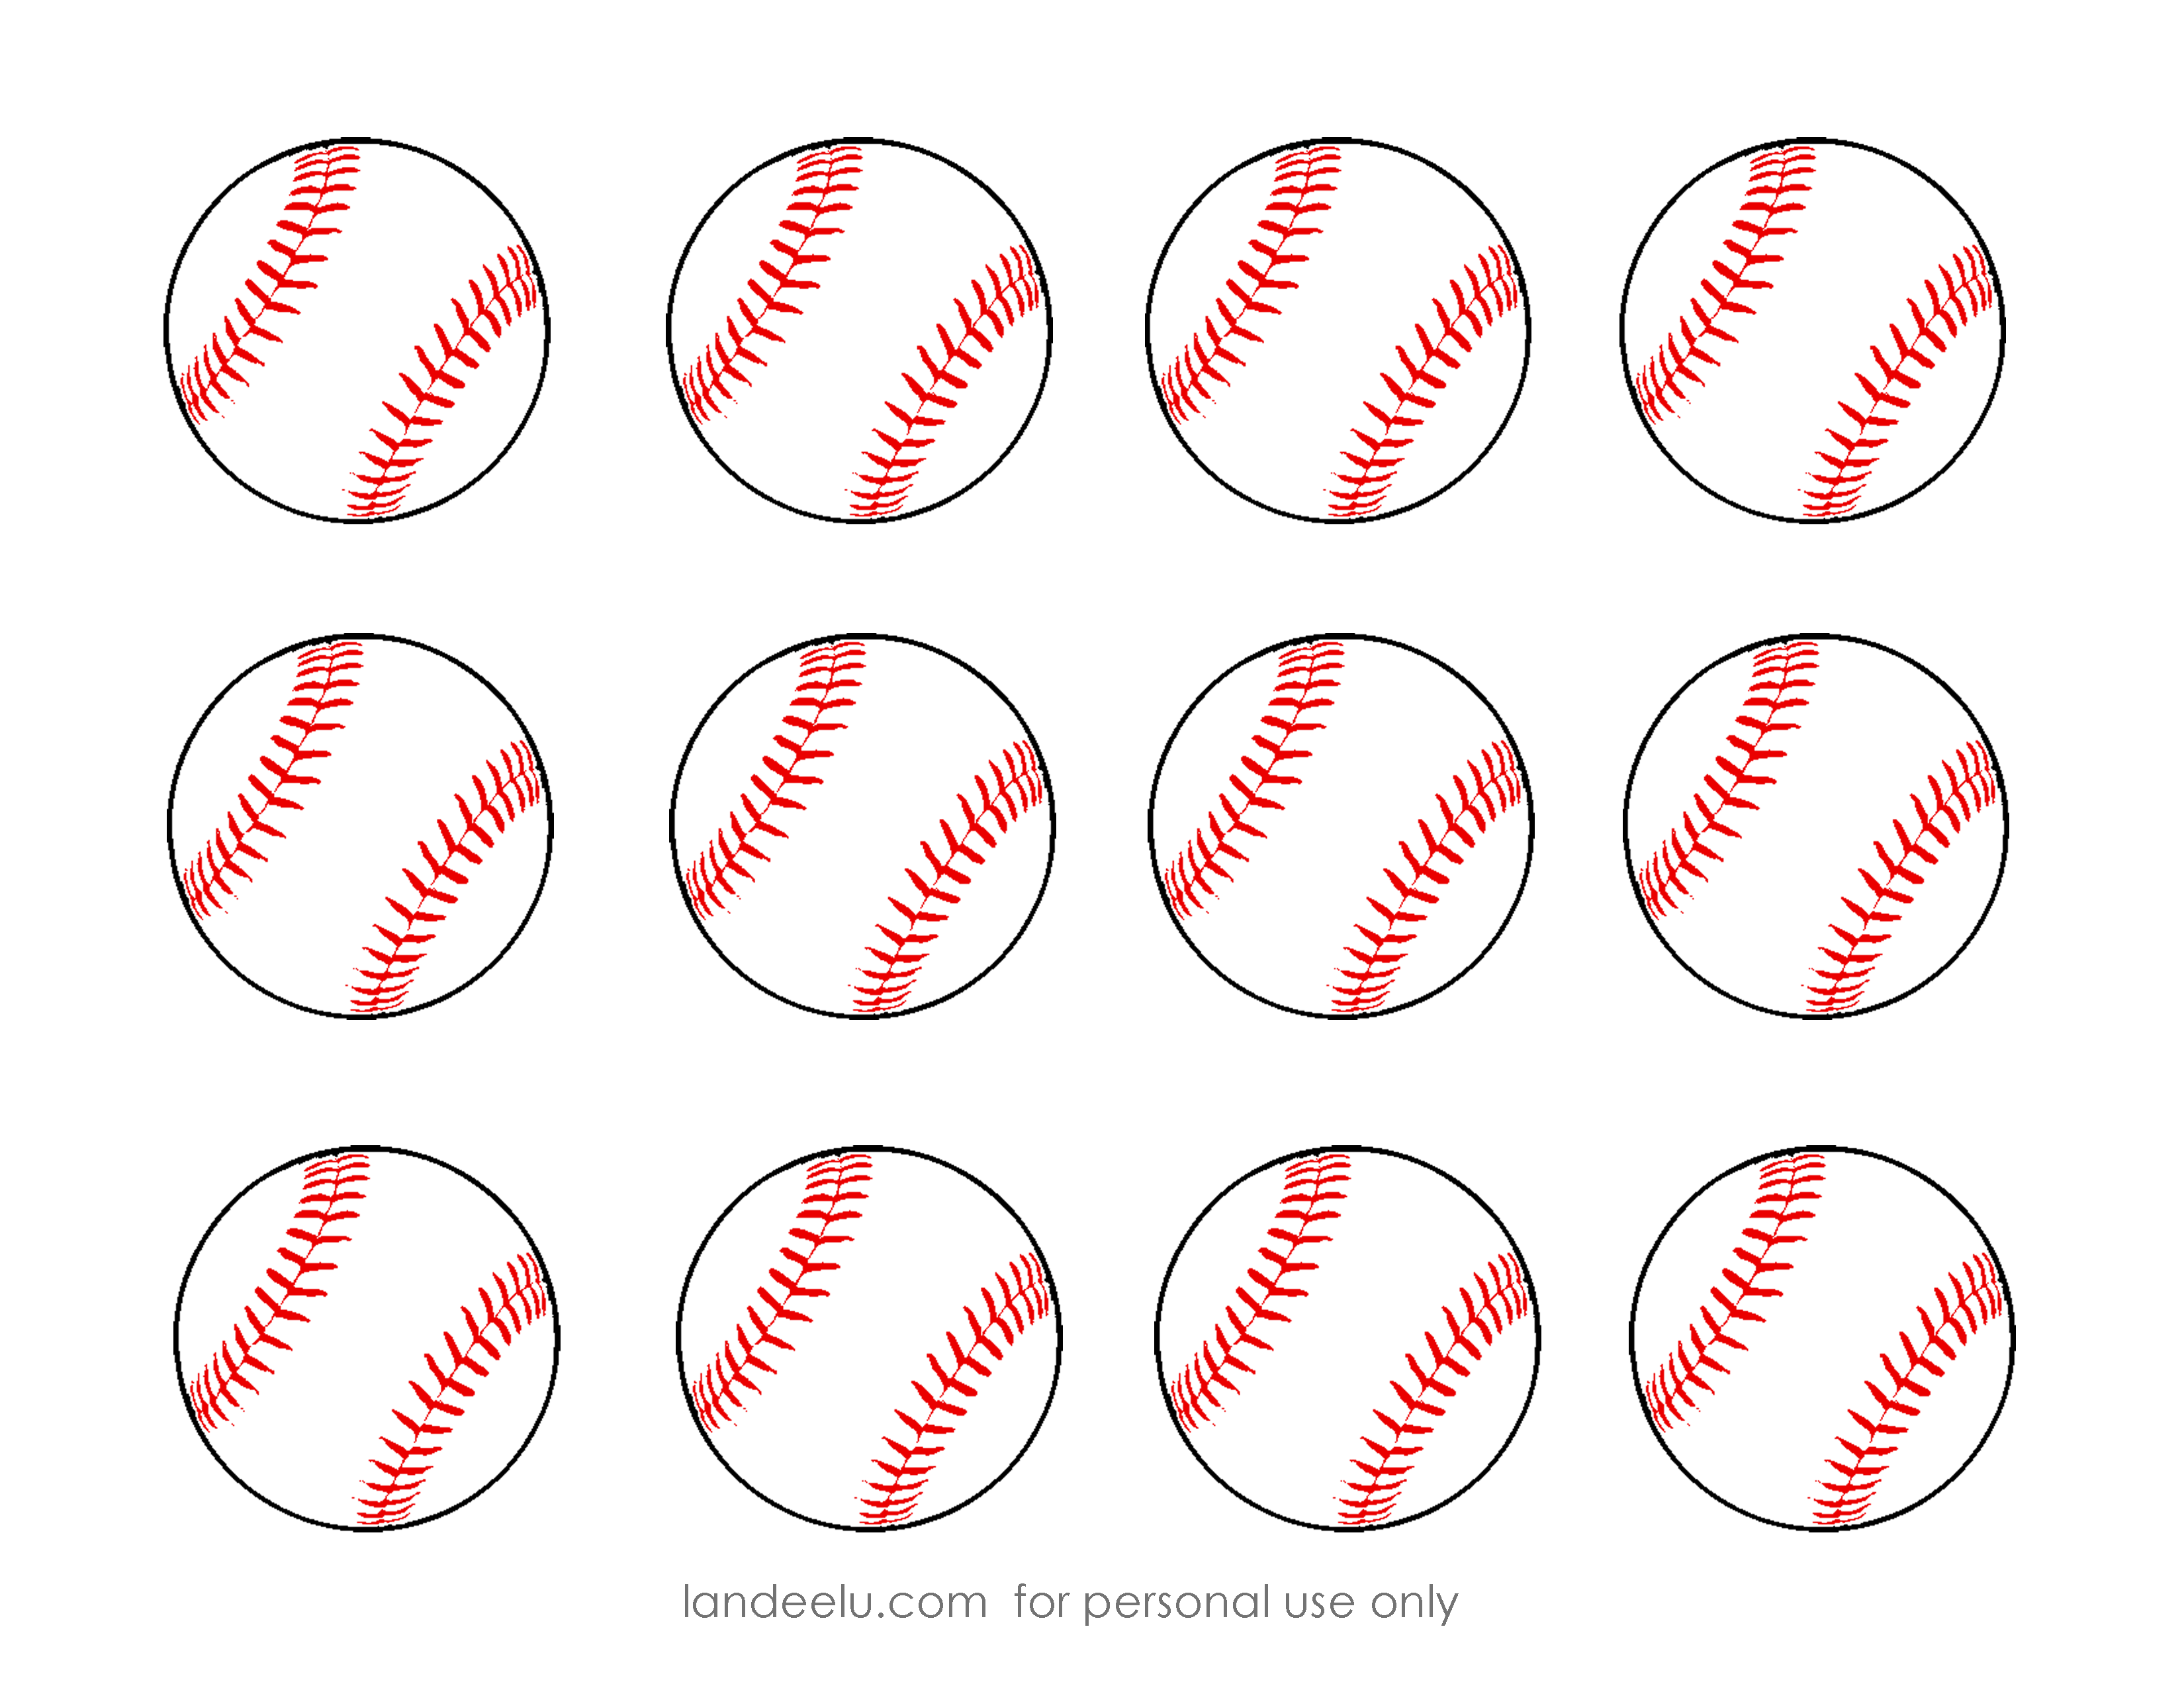 free printable baseball clip art images inch circle punch or scissors [ 3300 x 2550 Pixel ]